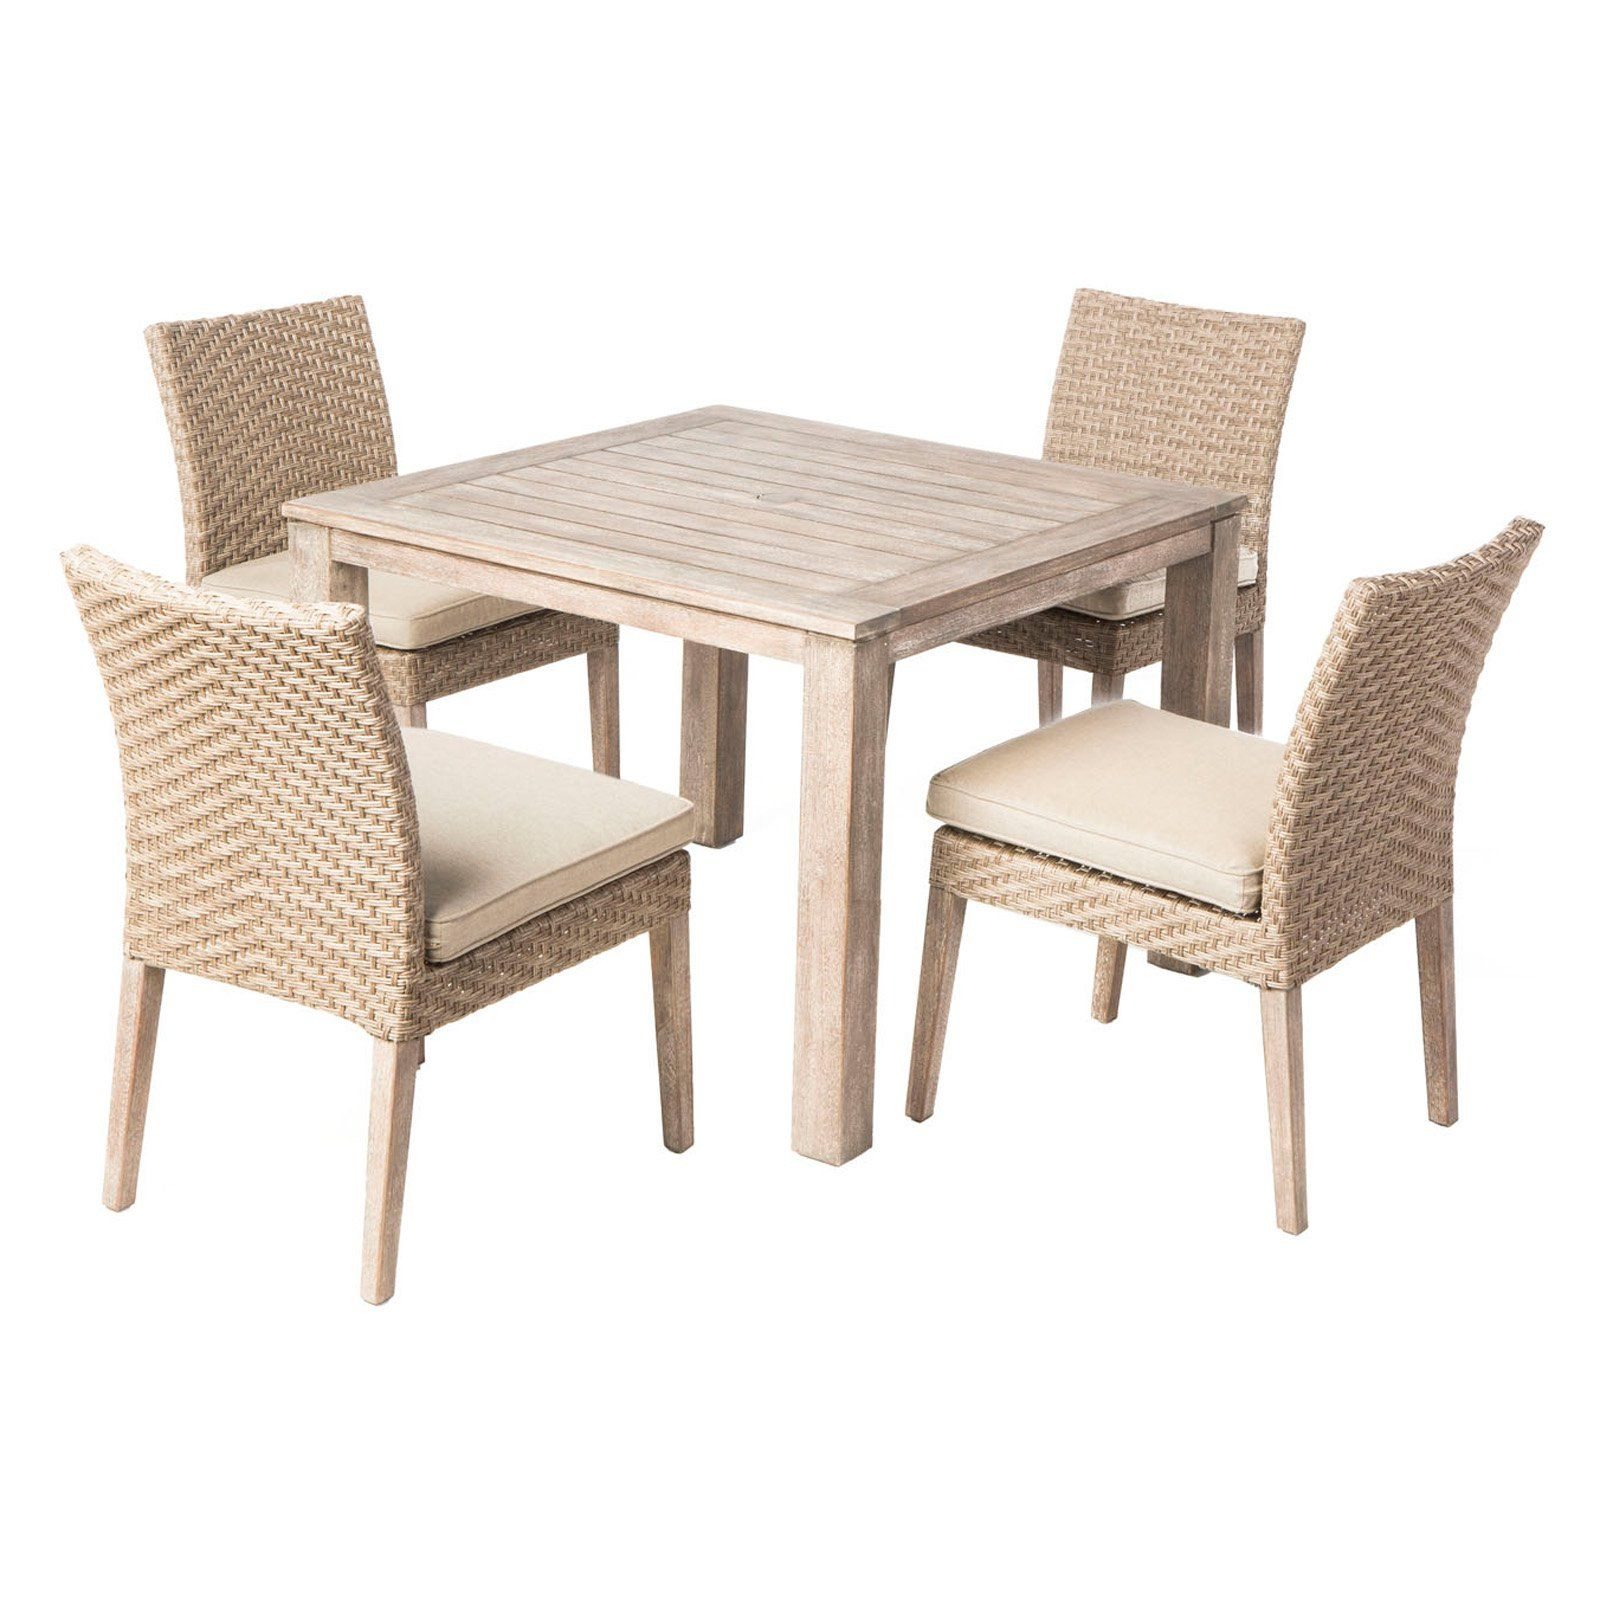 Outdoor Alfresco Home Cornwall Woven Wood Patio Dining Set Seats